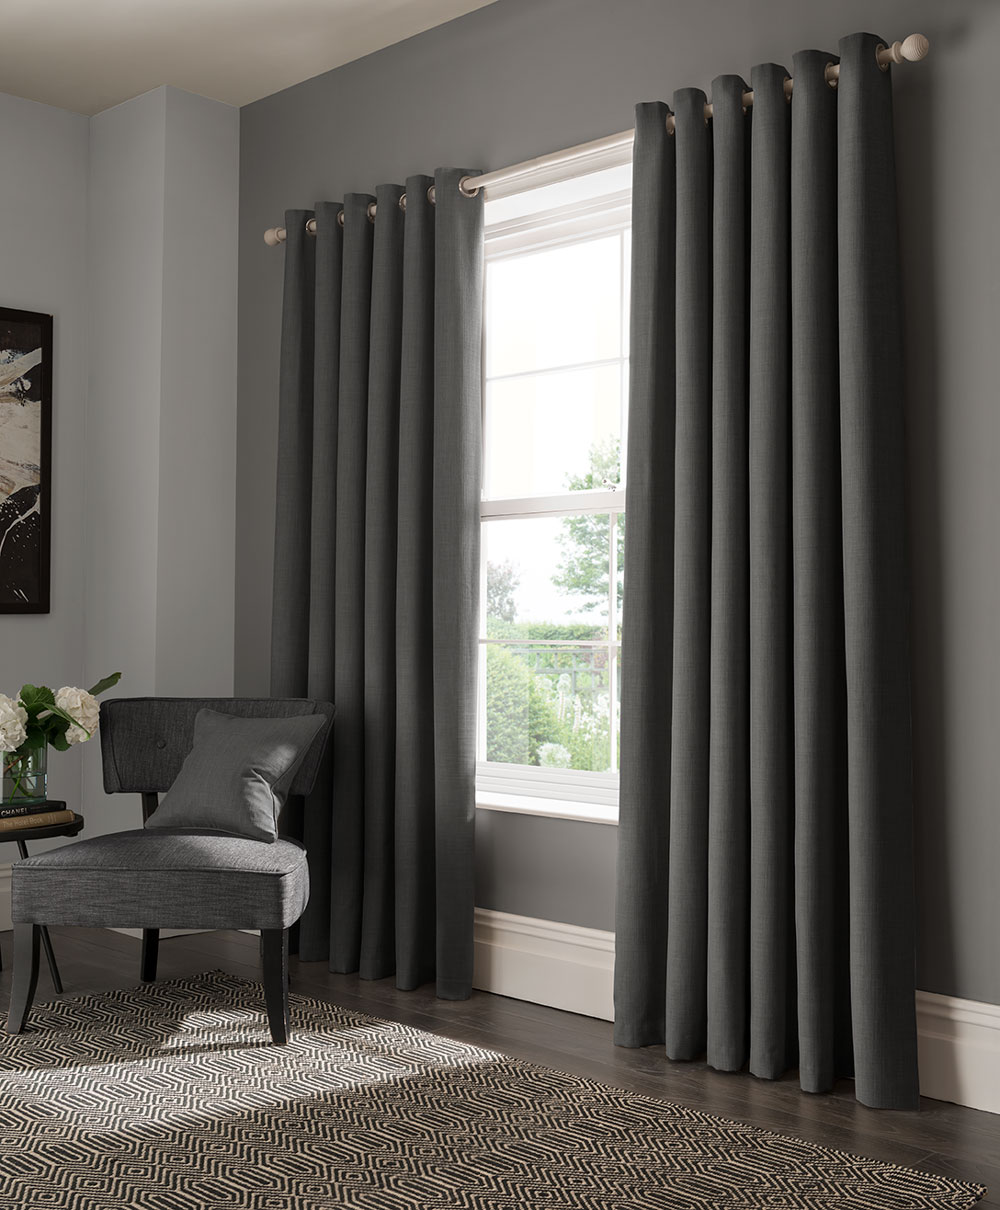 Studio G Elba Eyelet Curtains Steel Ready Made Curtains - Product code: M1104/04/66X5